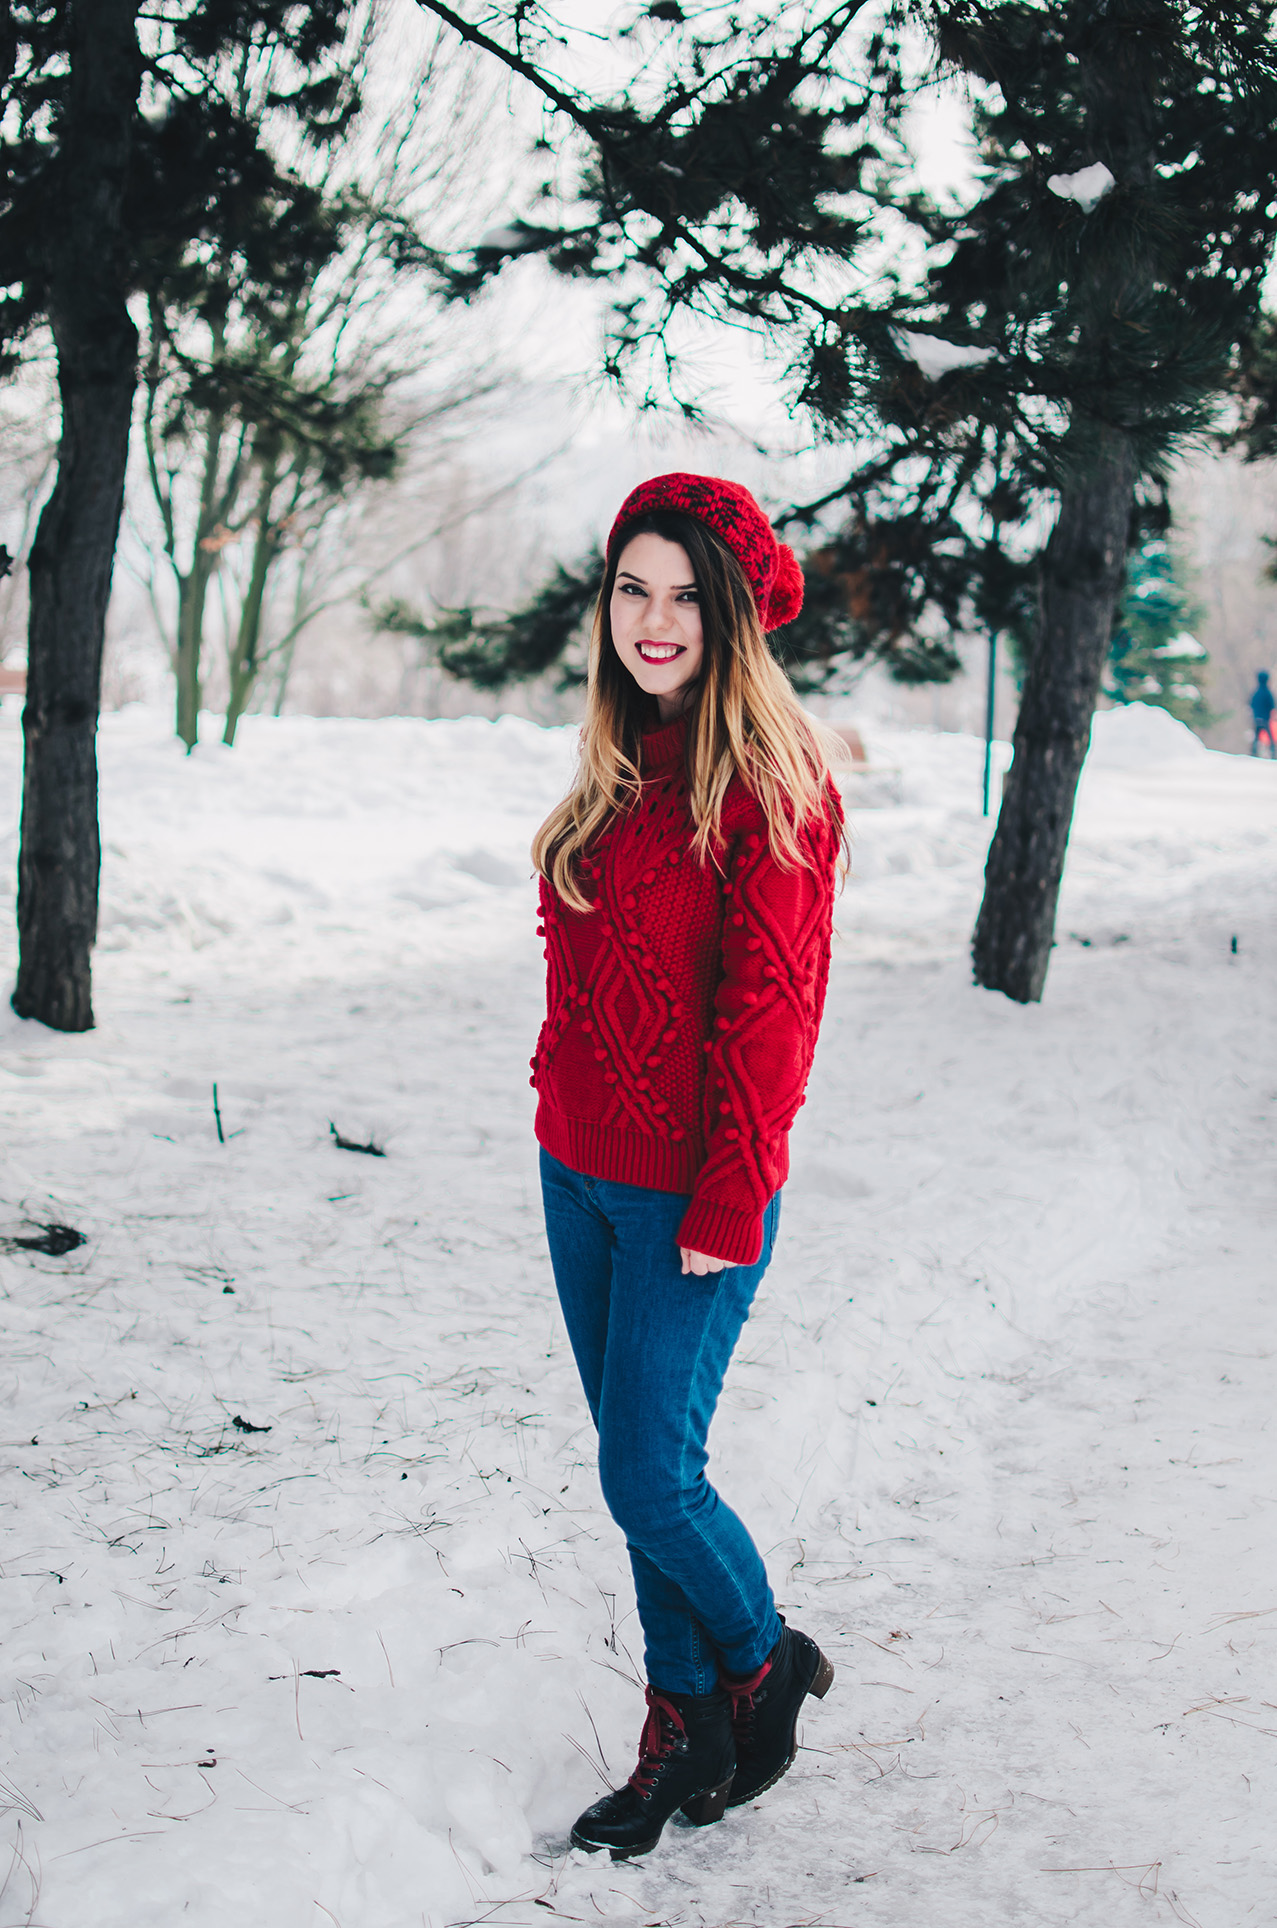 red winter outfit zaful sweater anotherside of me blog